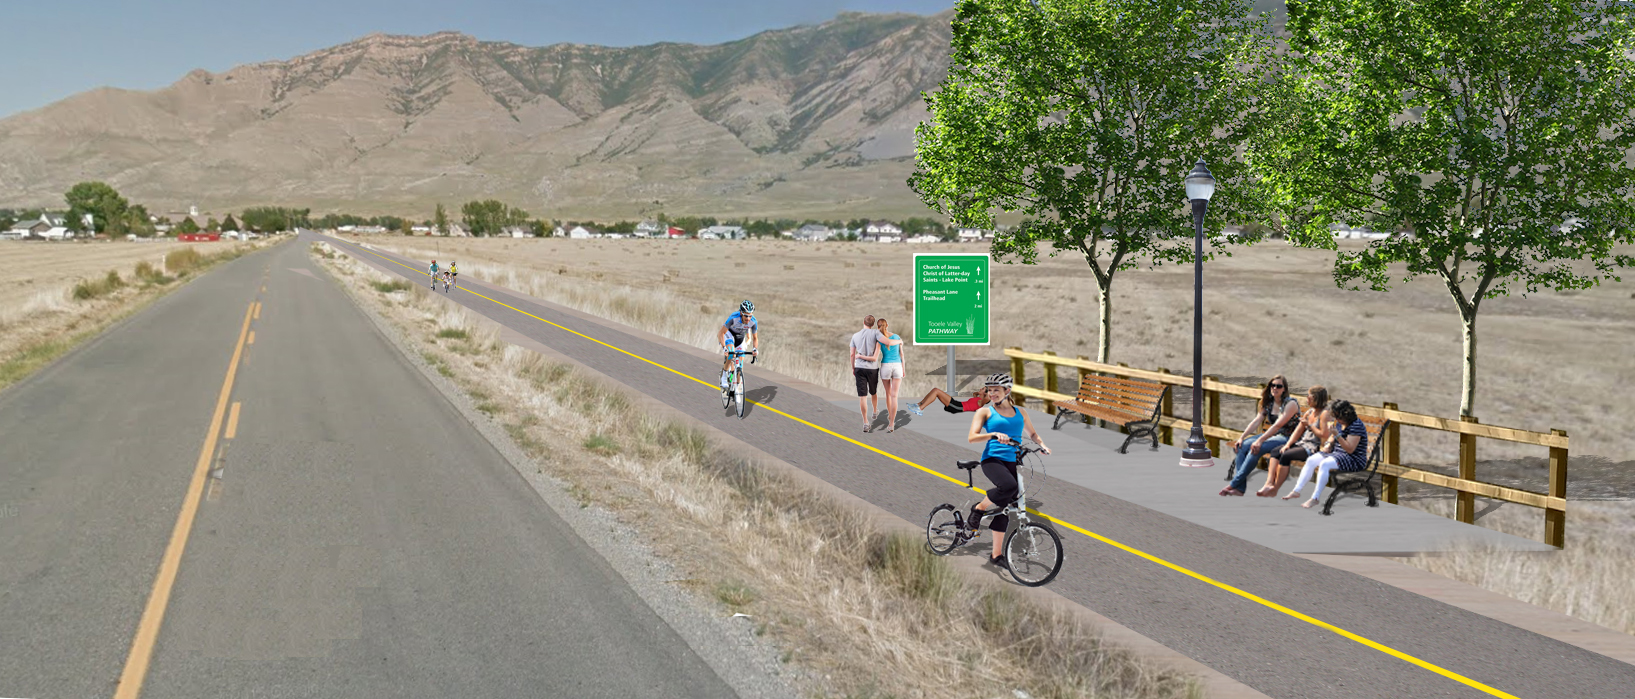 TOOELE COUNTY ACTIVE TRANSPORTATION IMPLEMENTATION PLAN